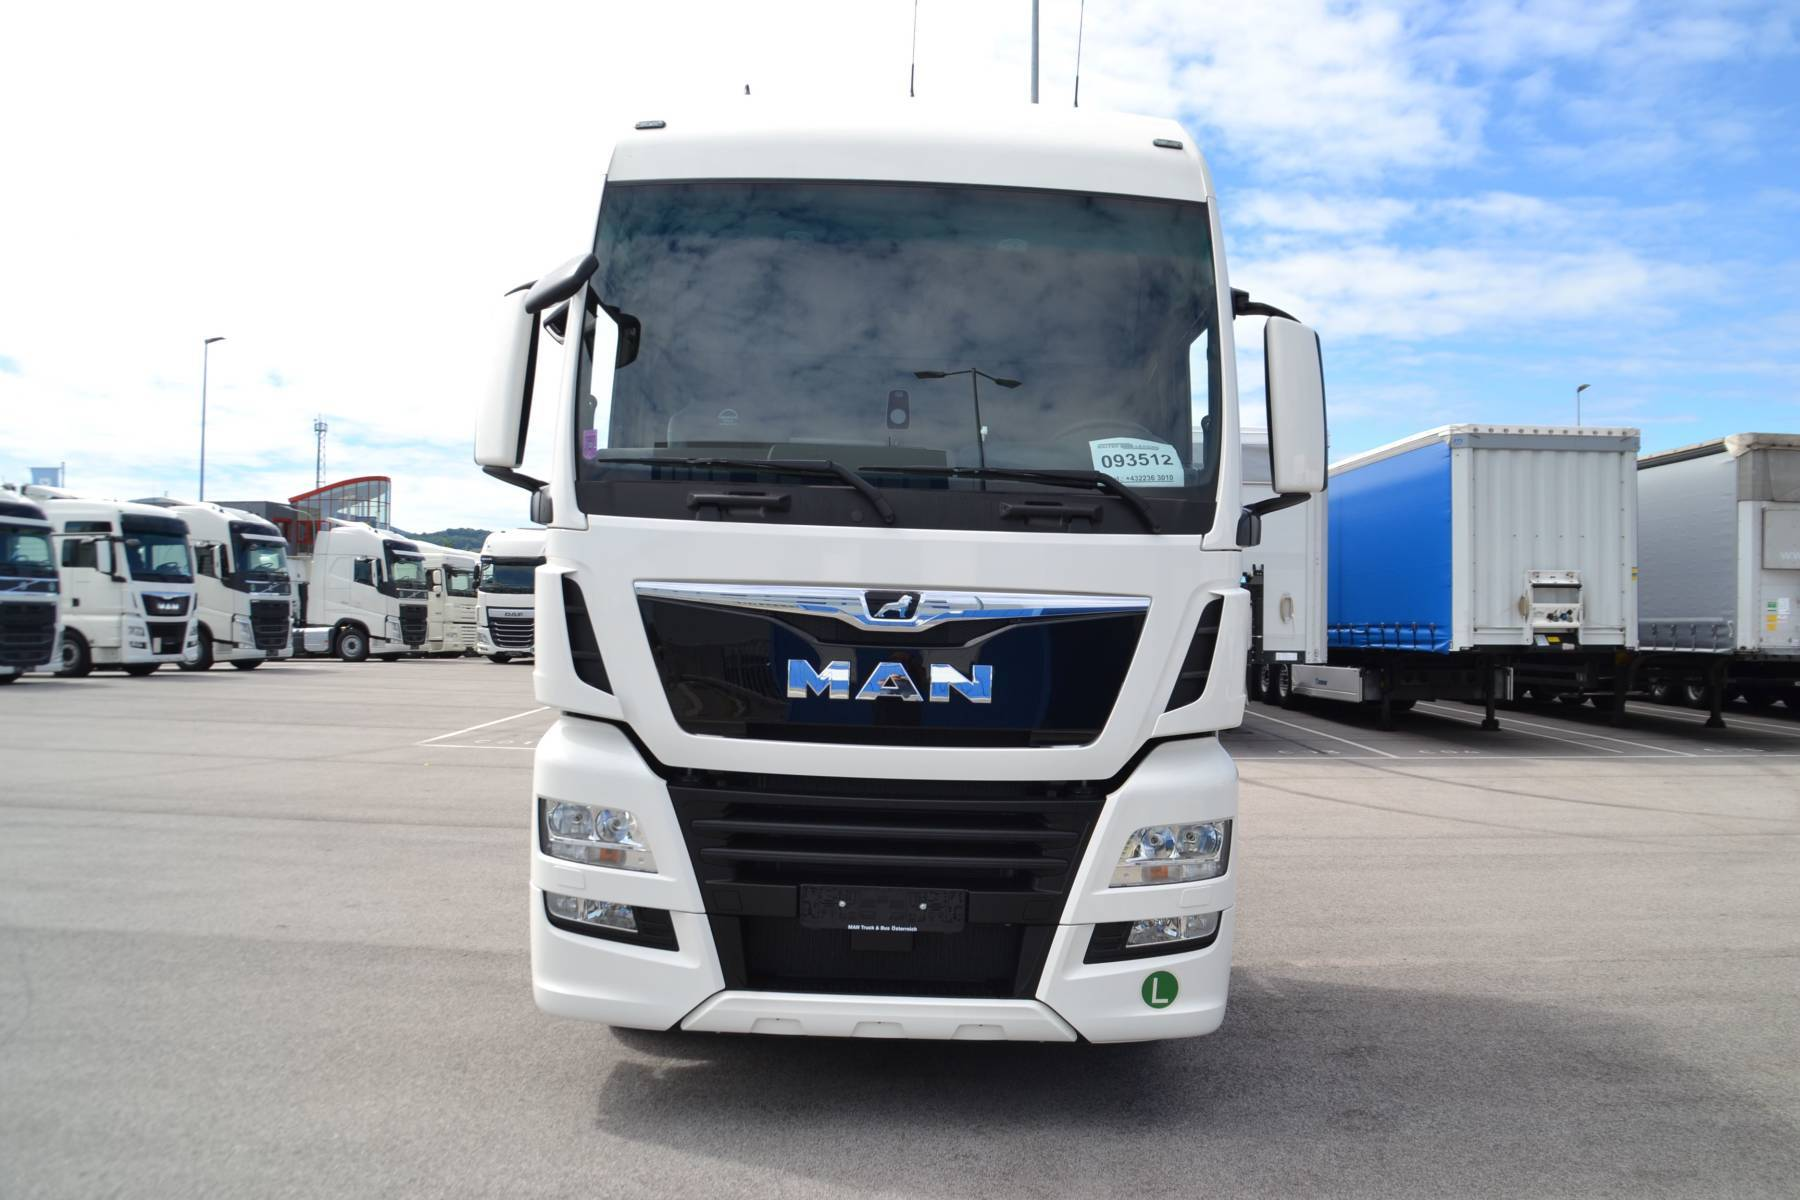 MAN HGV tractor unit TGX 18.500 4x2 BLS - new 2